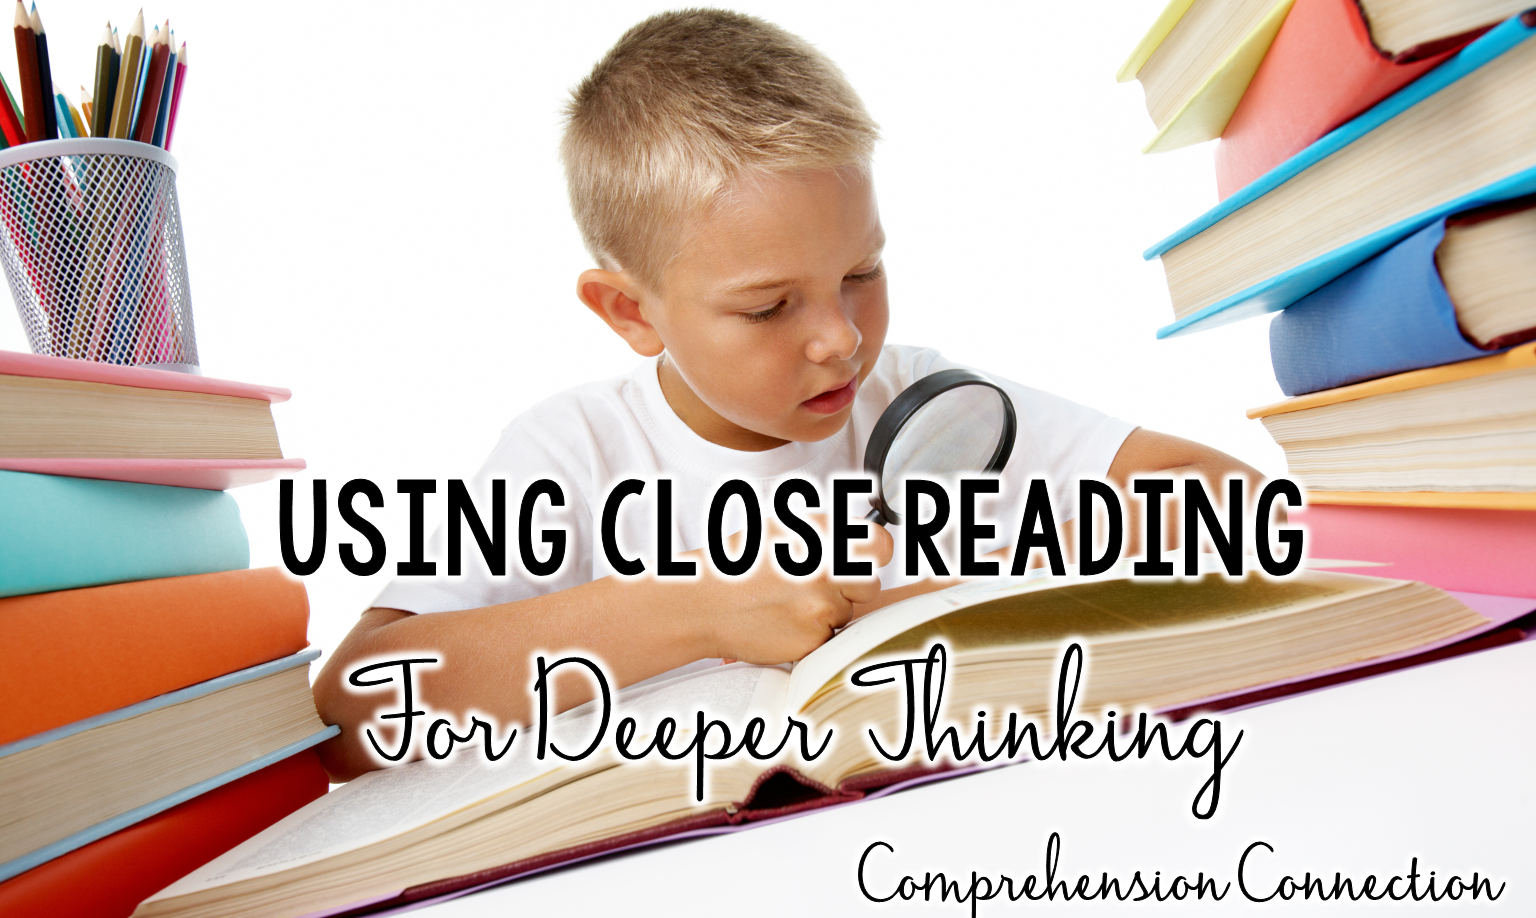 This post explains close reading and the benefits of using it. Perfect for those getting started. Free handout and links to resources.